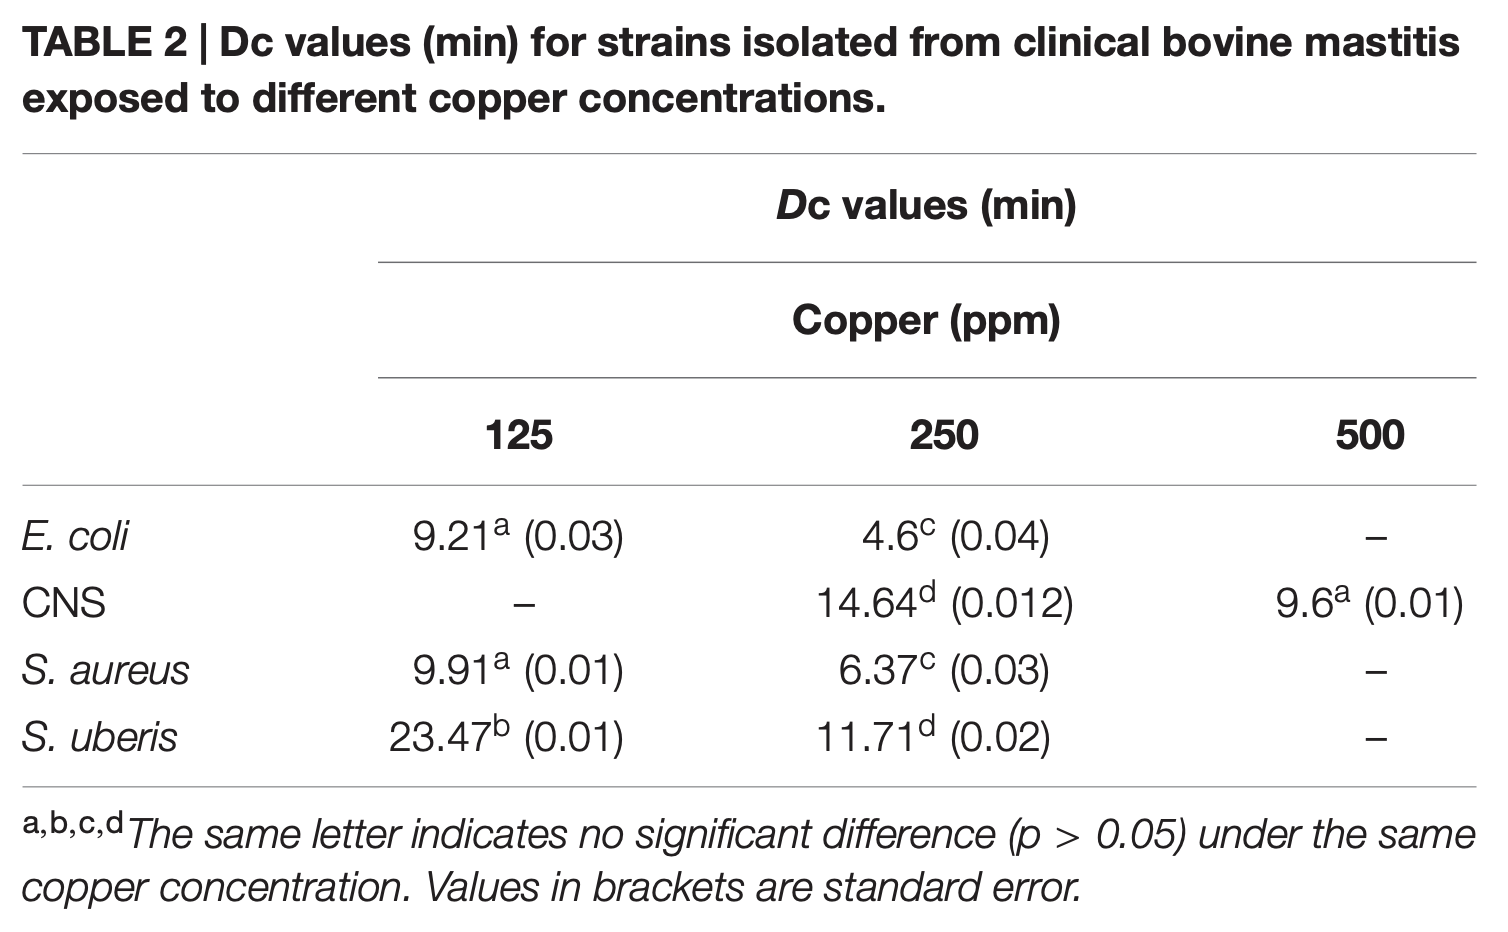 Dc values (min) for strains isolated from clinical bovine mastitis exposed to different copper concentrations.